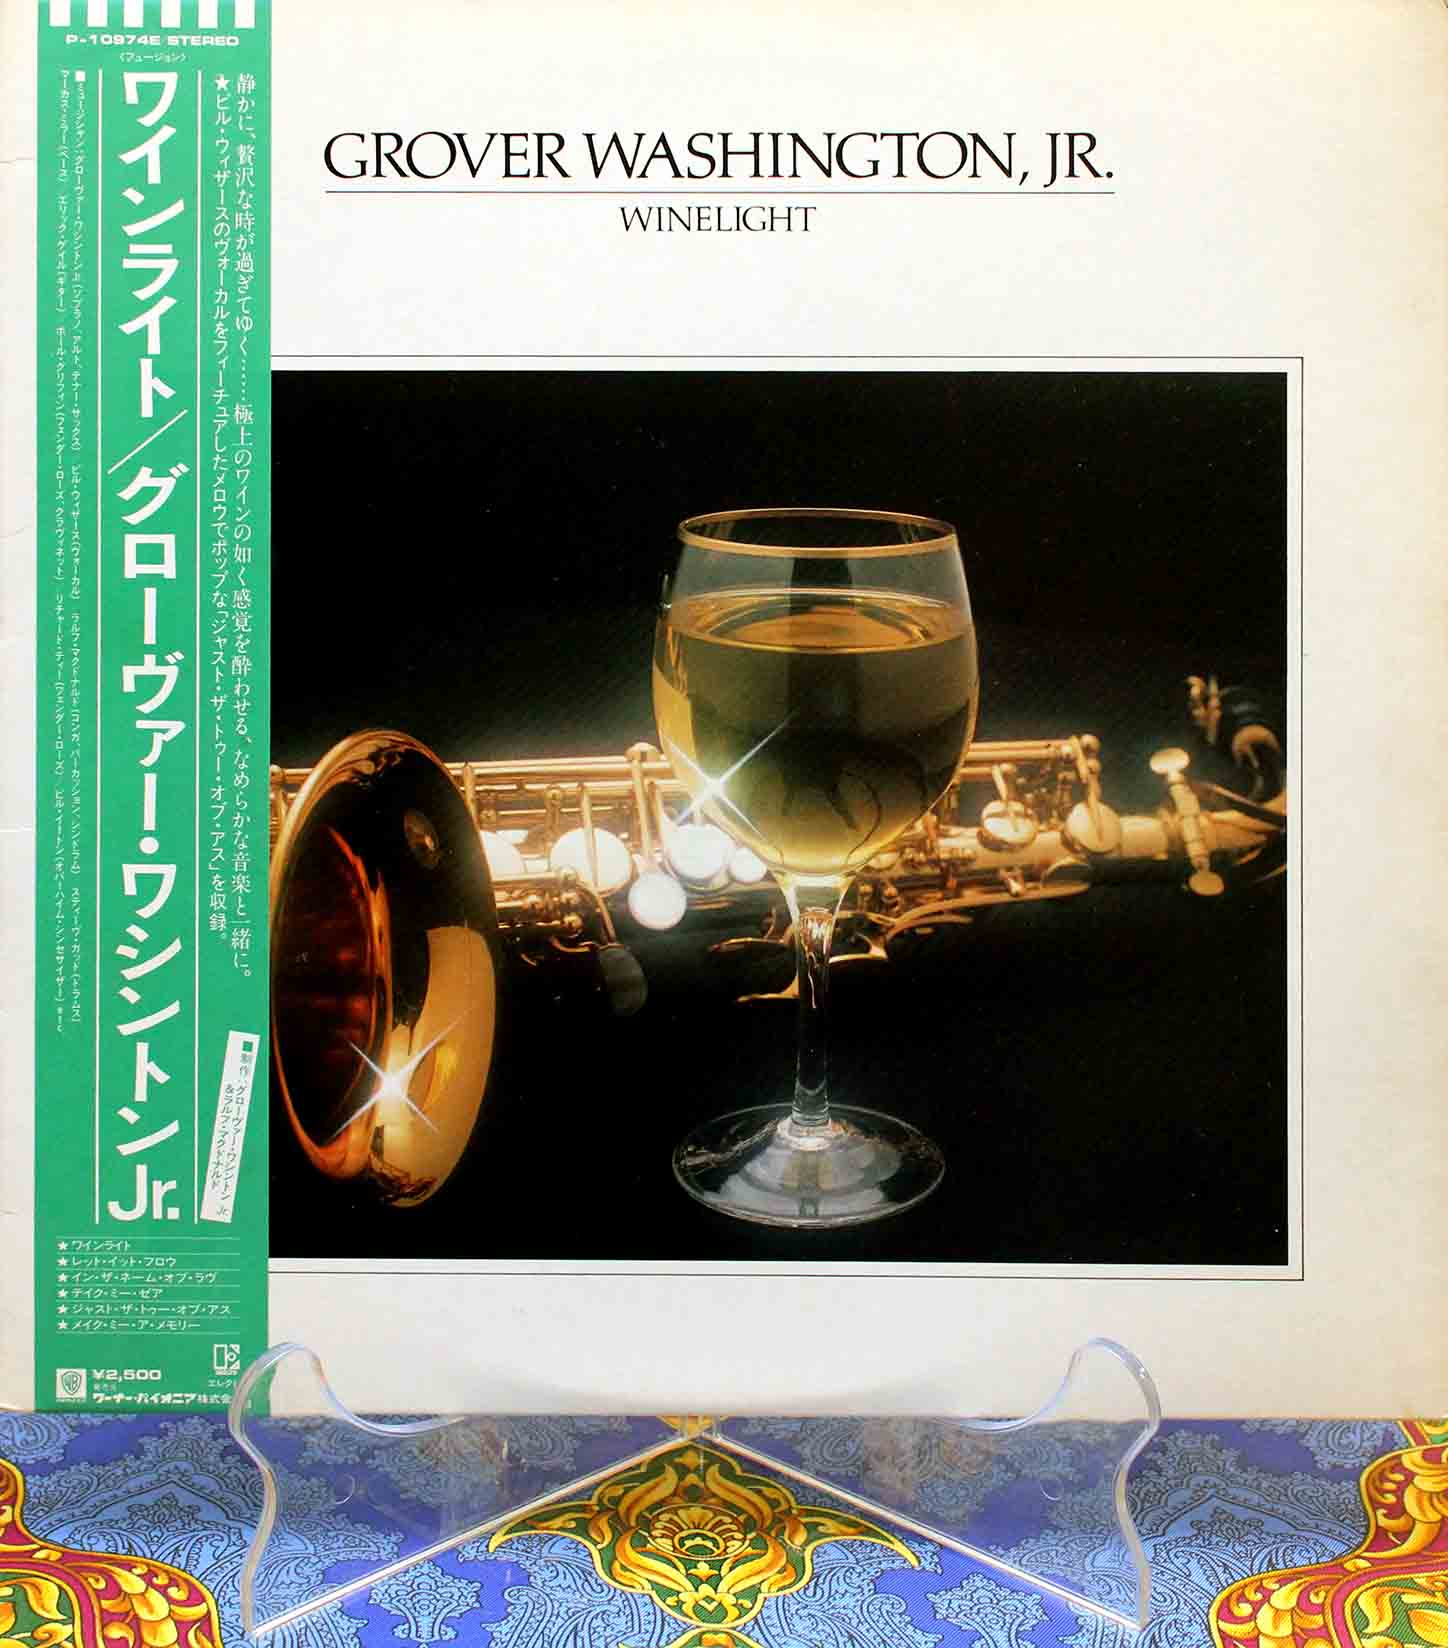 Grover Washington, Jr ‎- Winelight LP 01